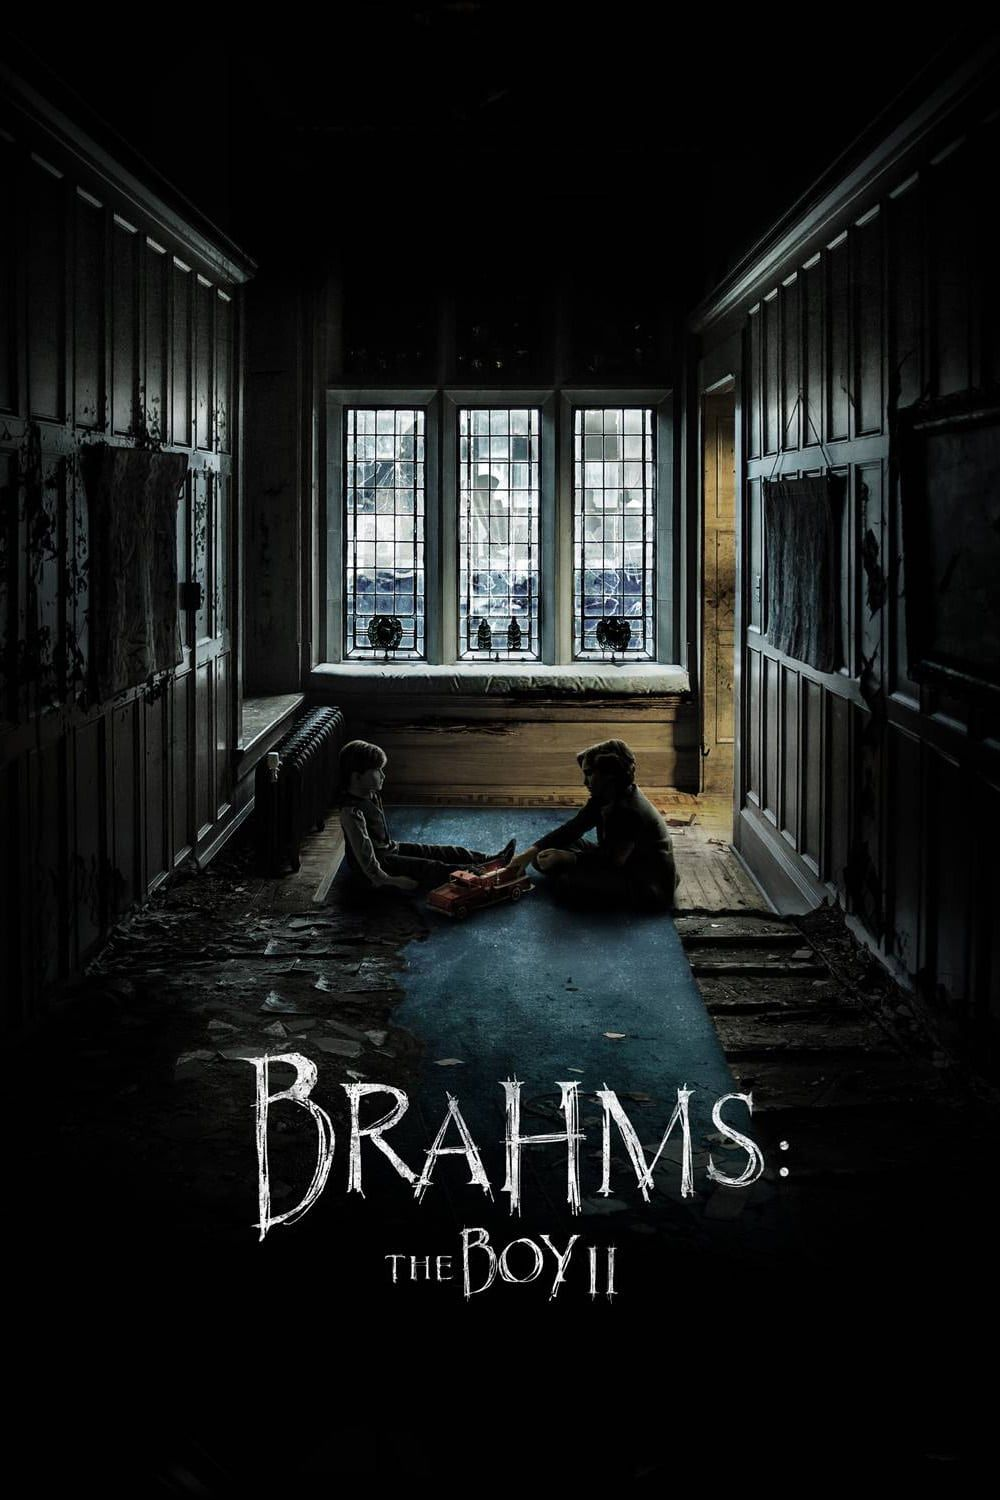 Download Brahms The Boy Ii Film Completo In Italiano Free Movies Online Full Movies Full Movies Online Free